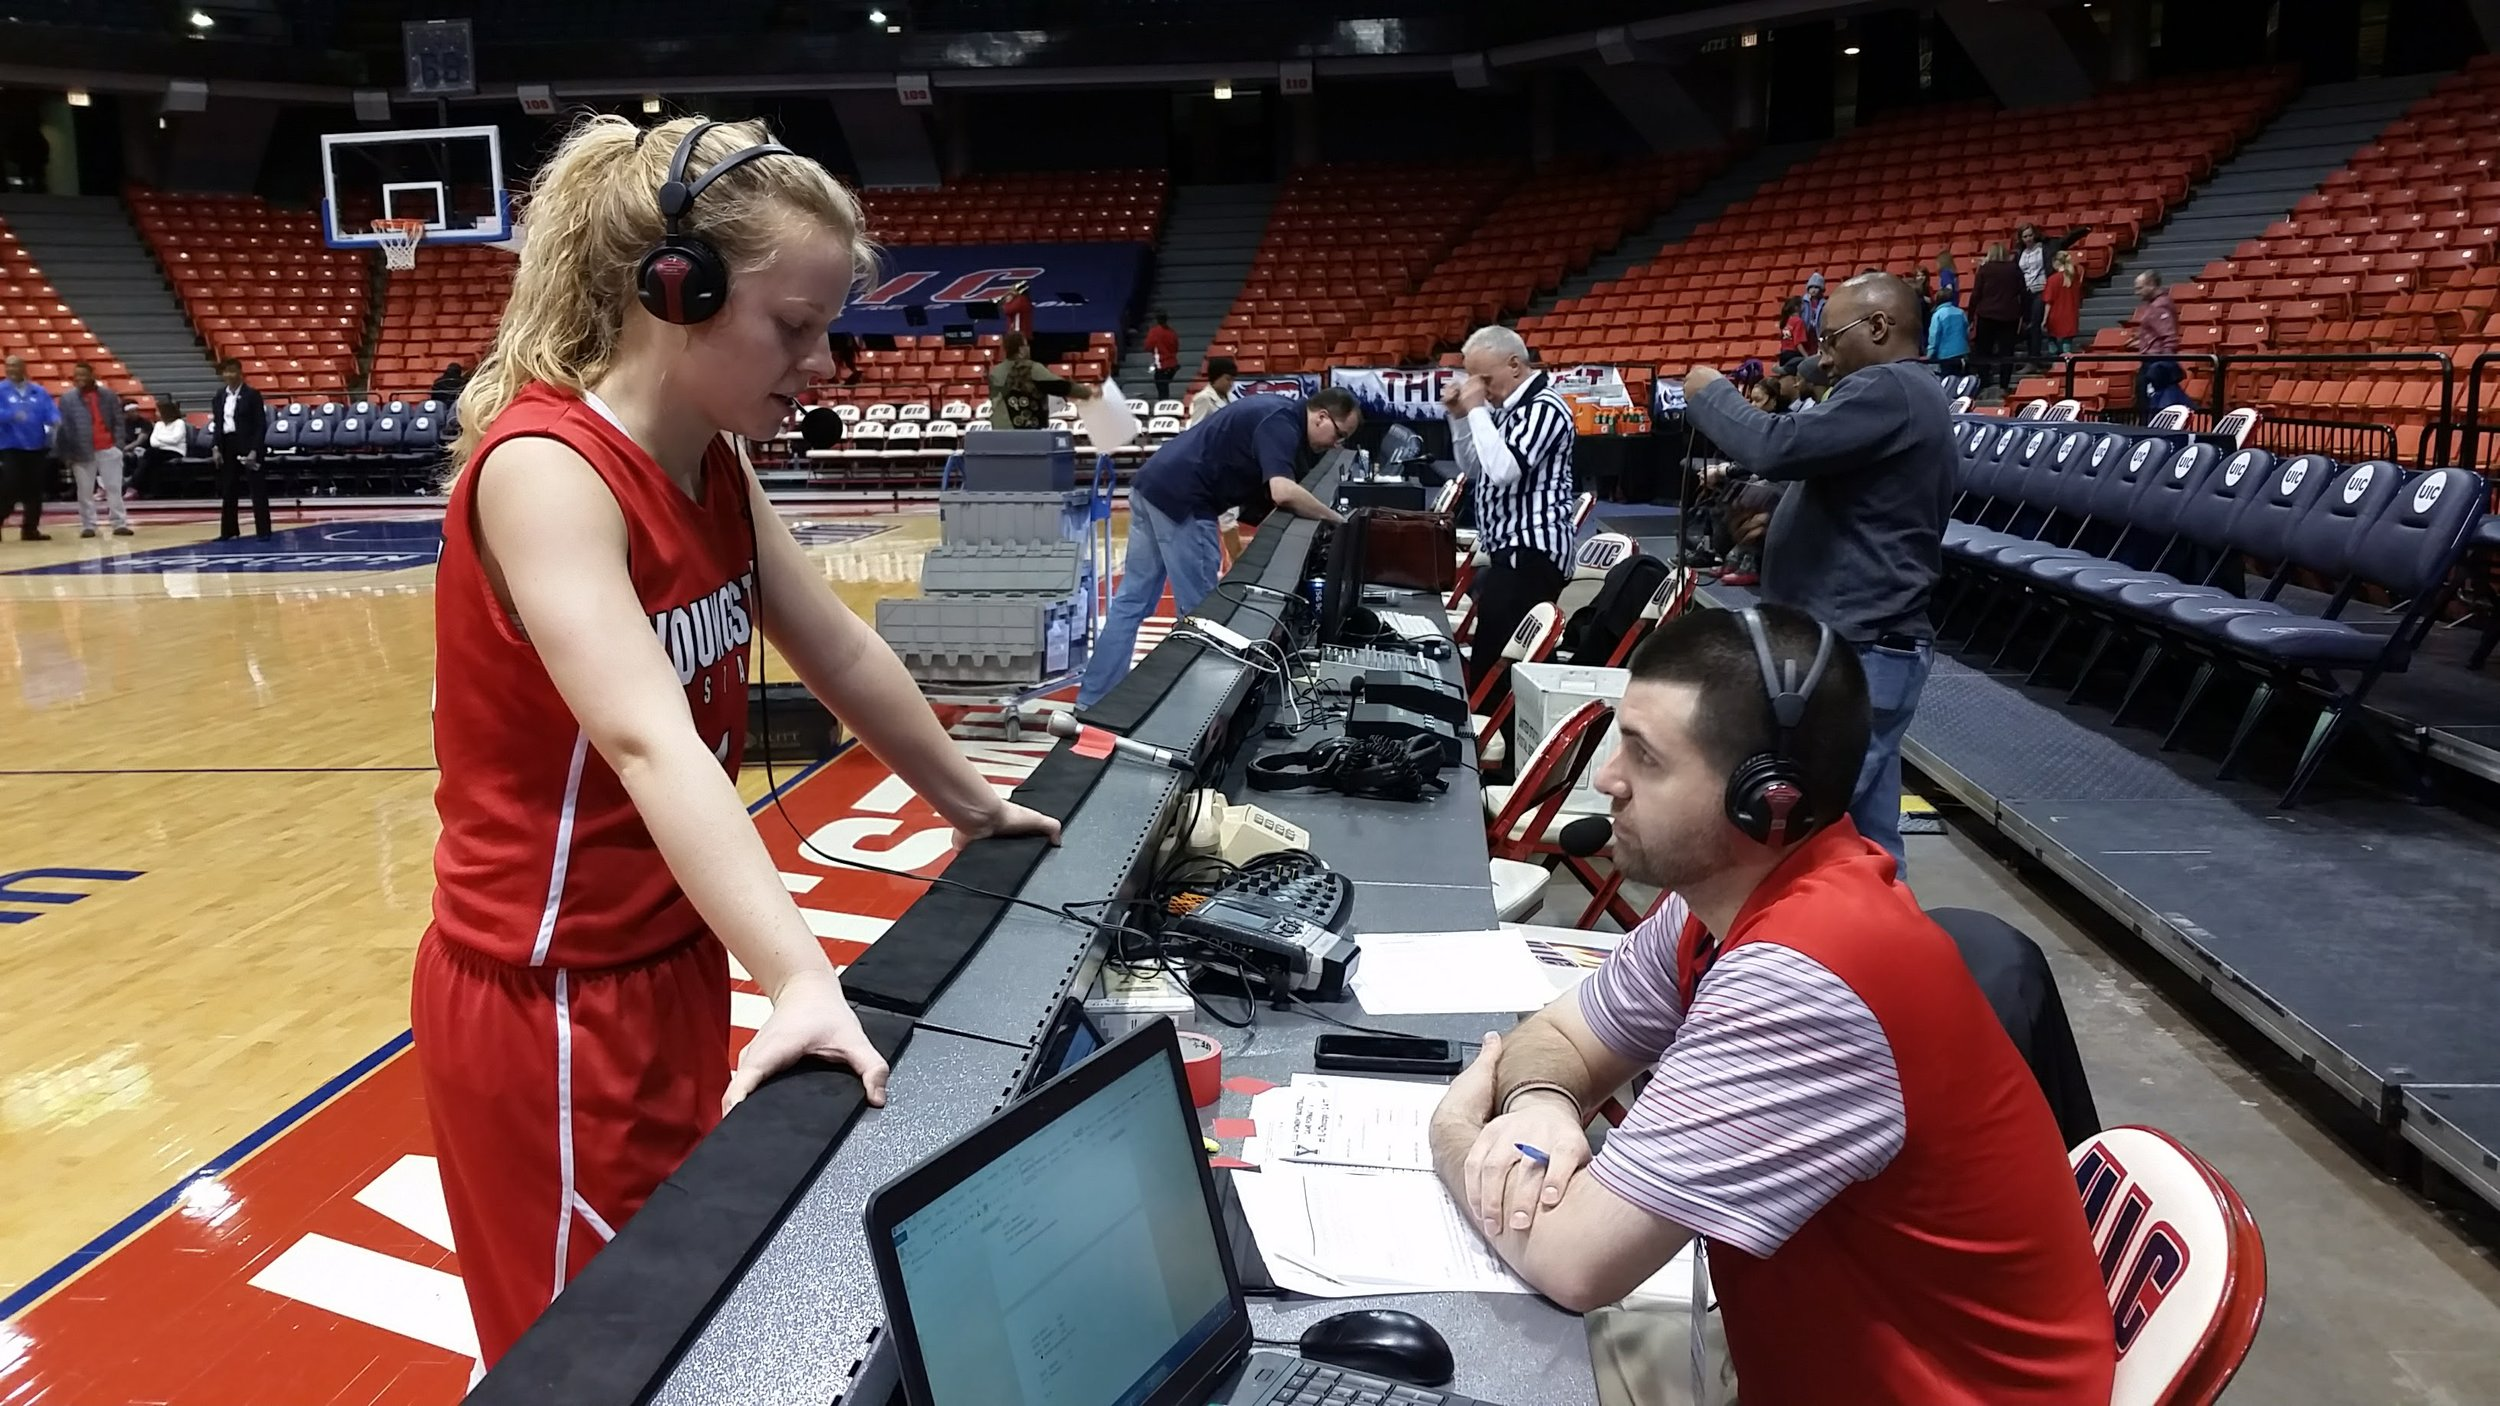 Postgame interview with Youngstown State Women's Basketball Player, Melinda Trimmer, after a win at UIC on February, 2017.